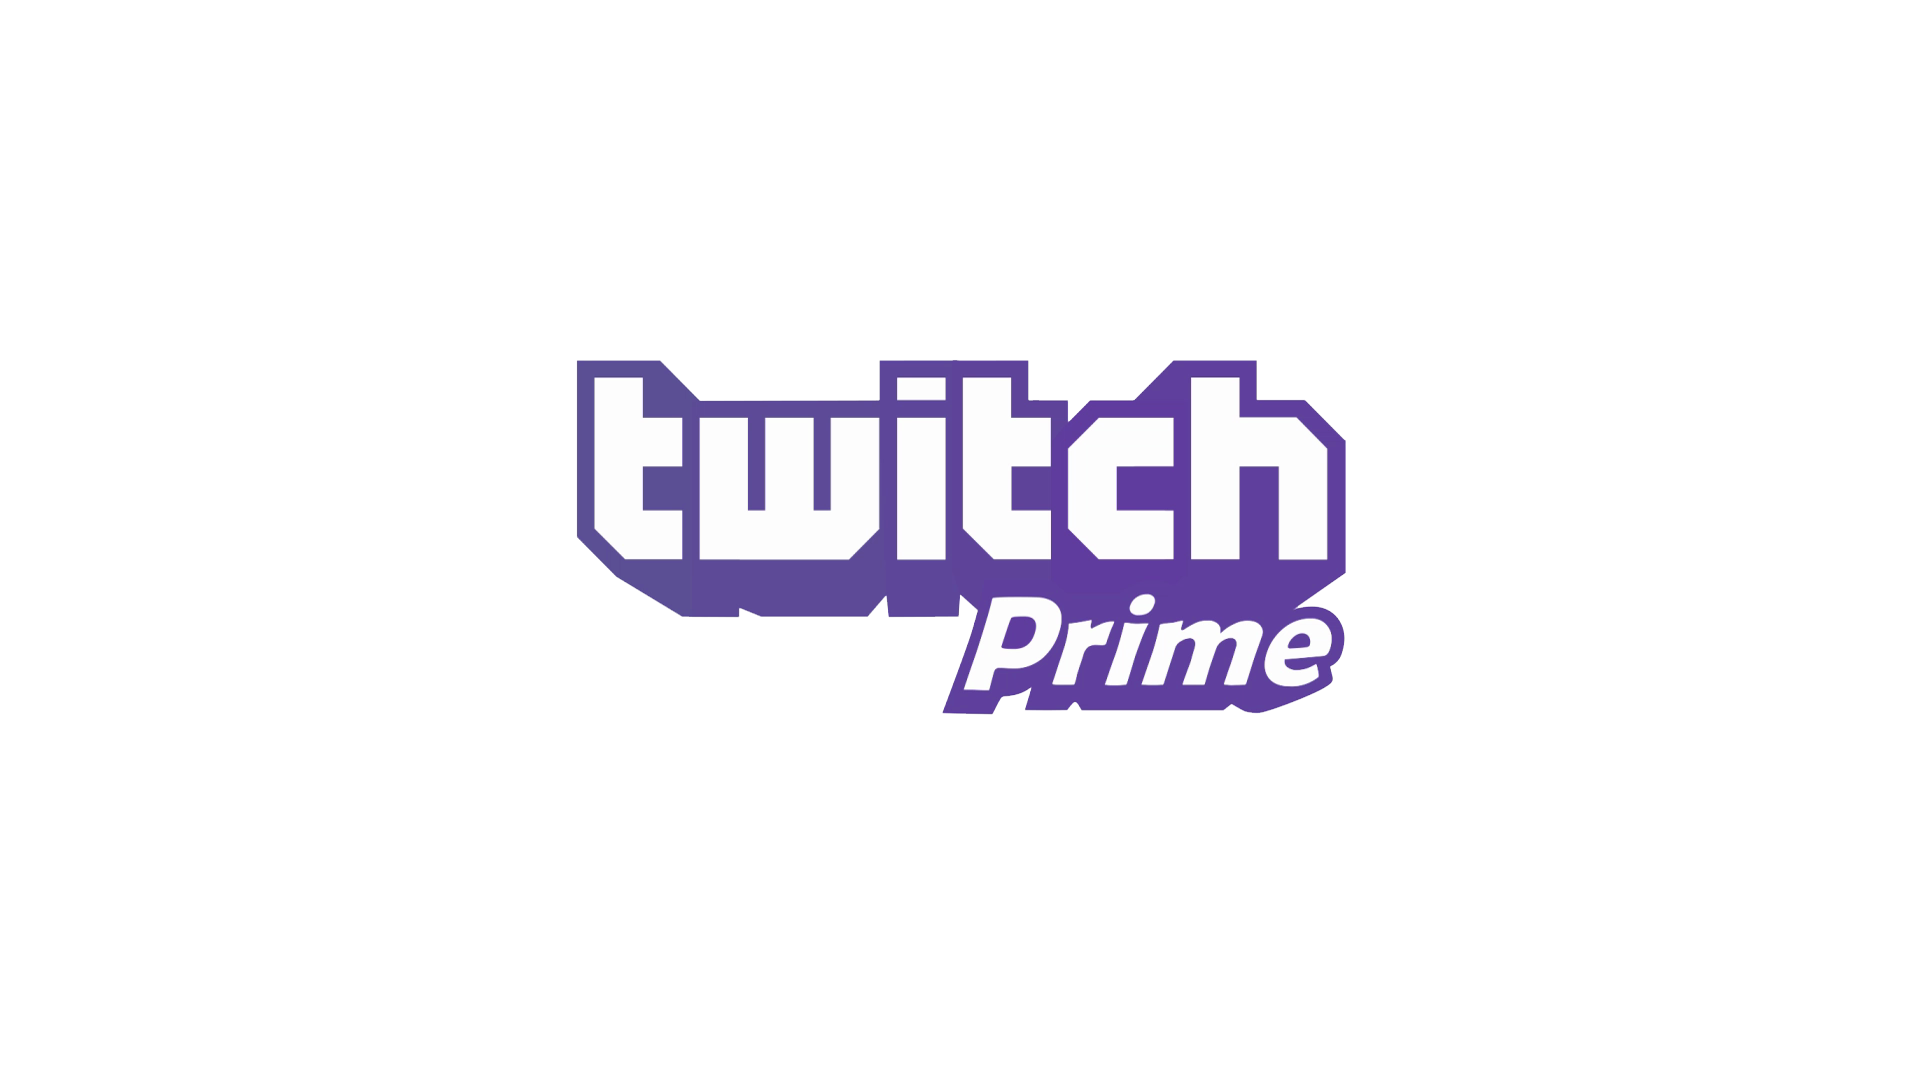 twitch prime logo high resolution PNG Image